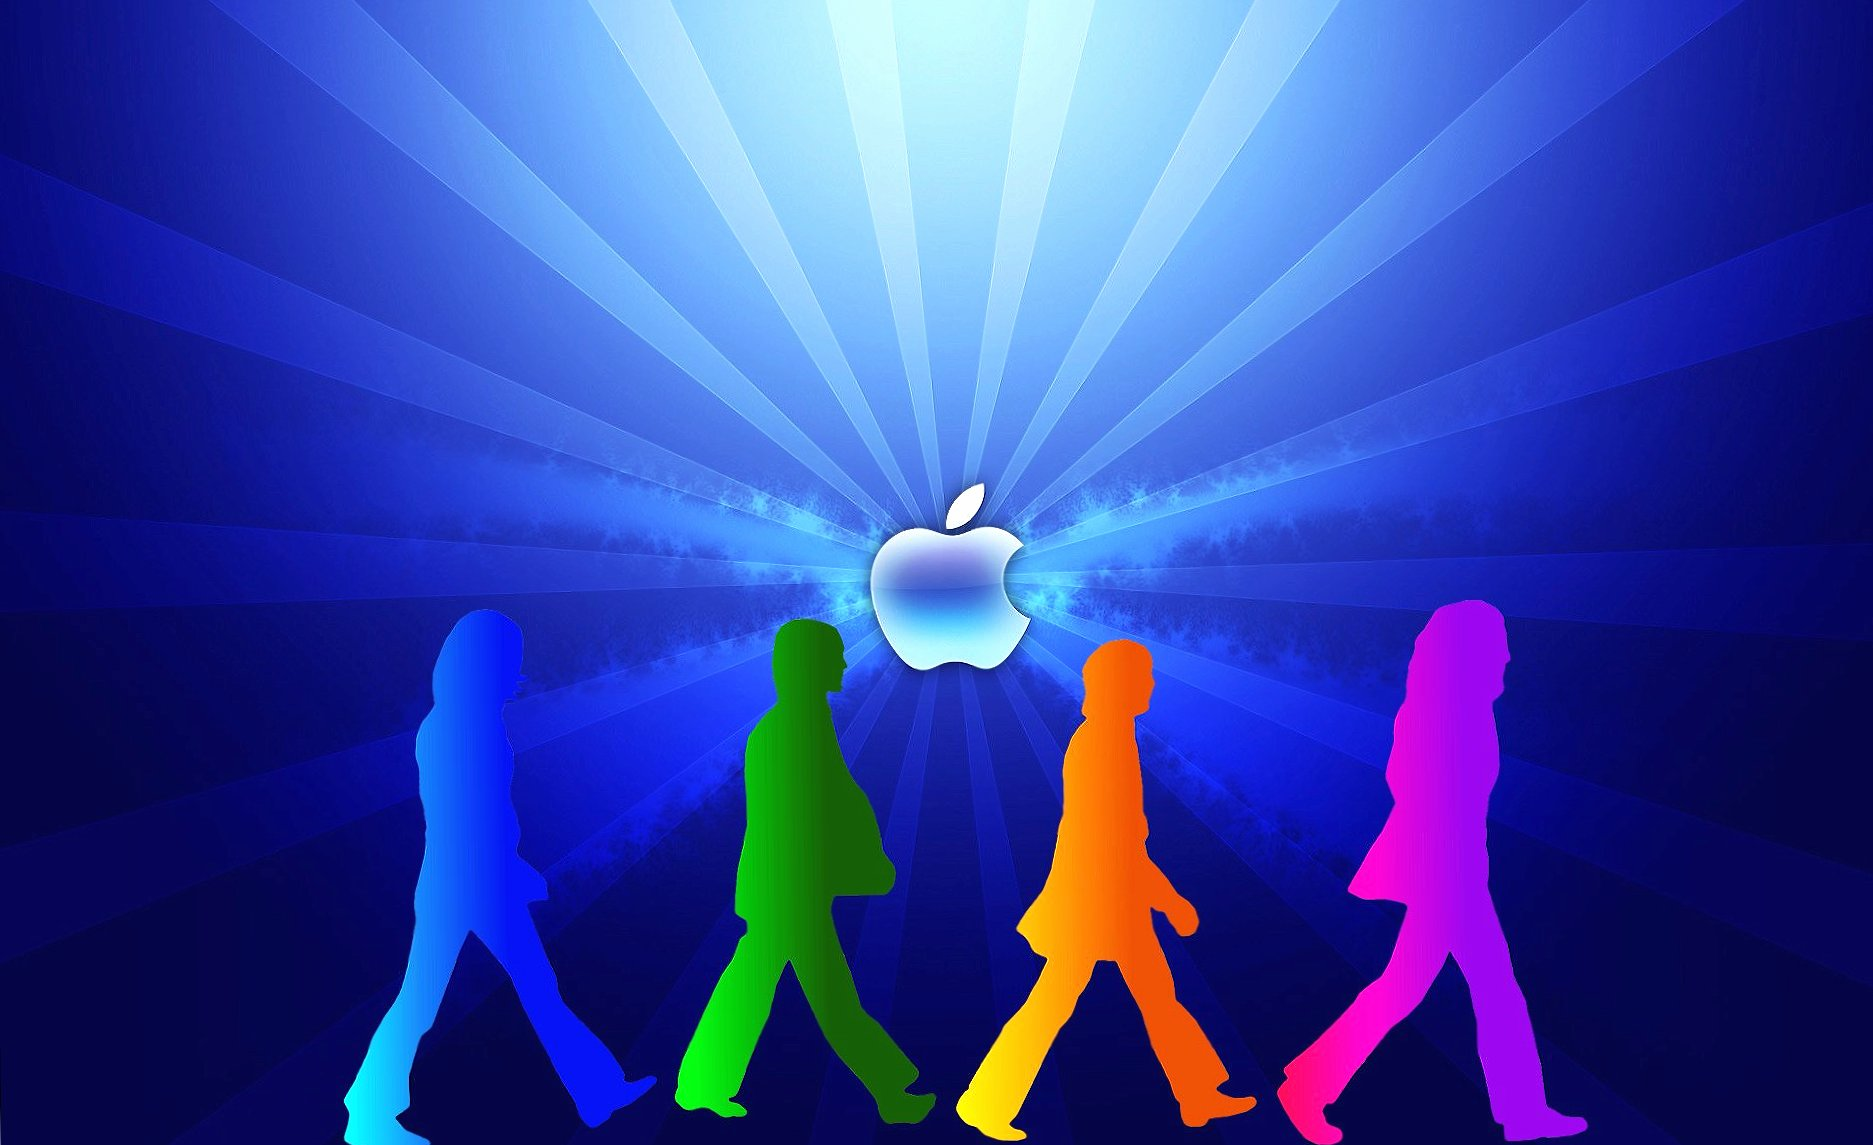 Beatles apple wallpapers HD quality